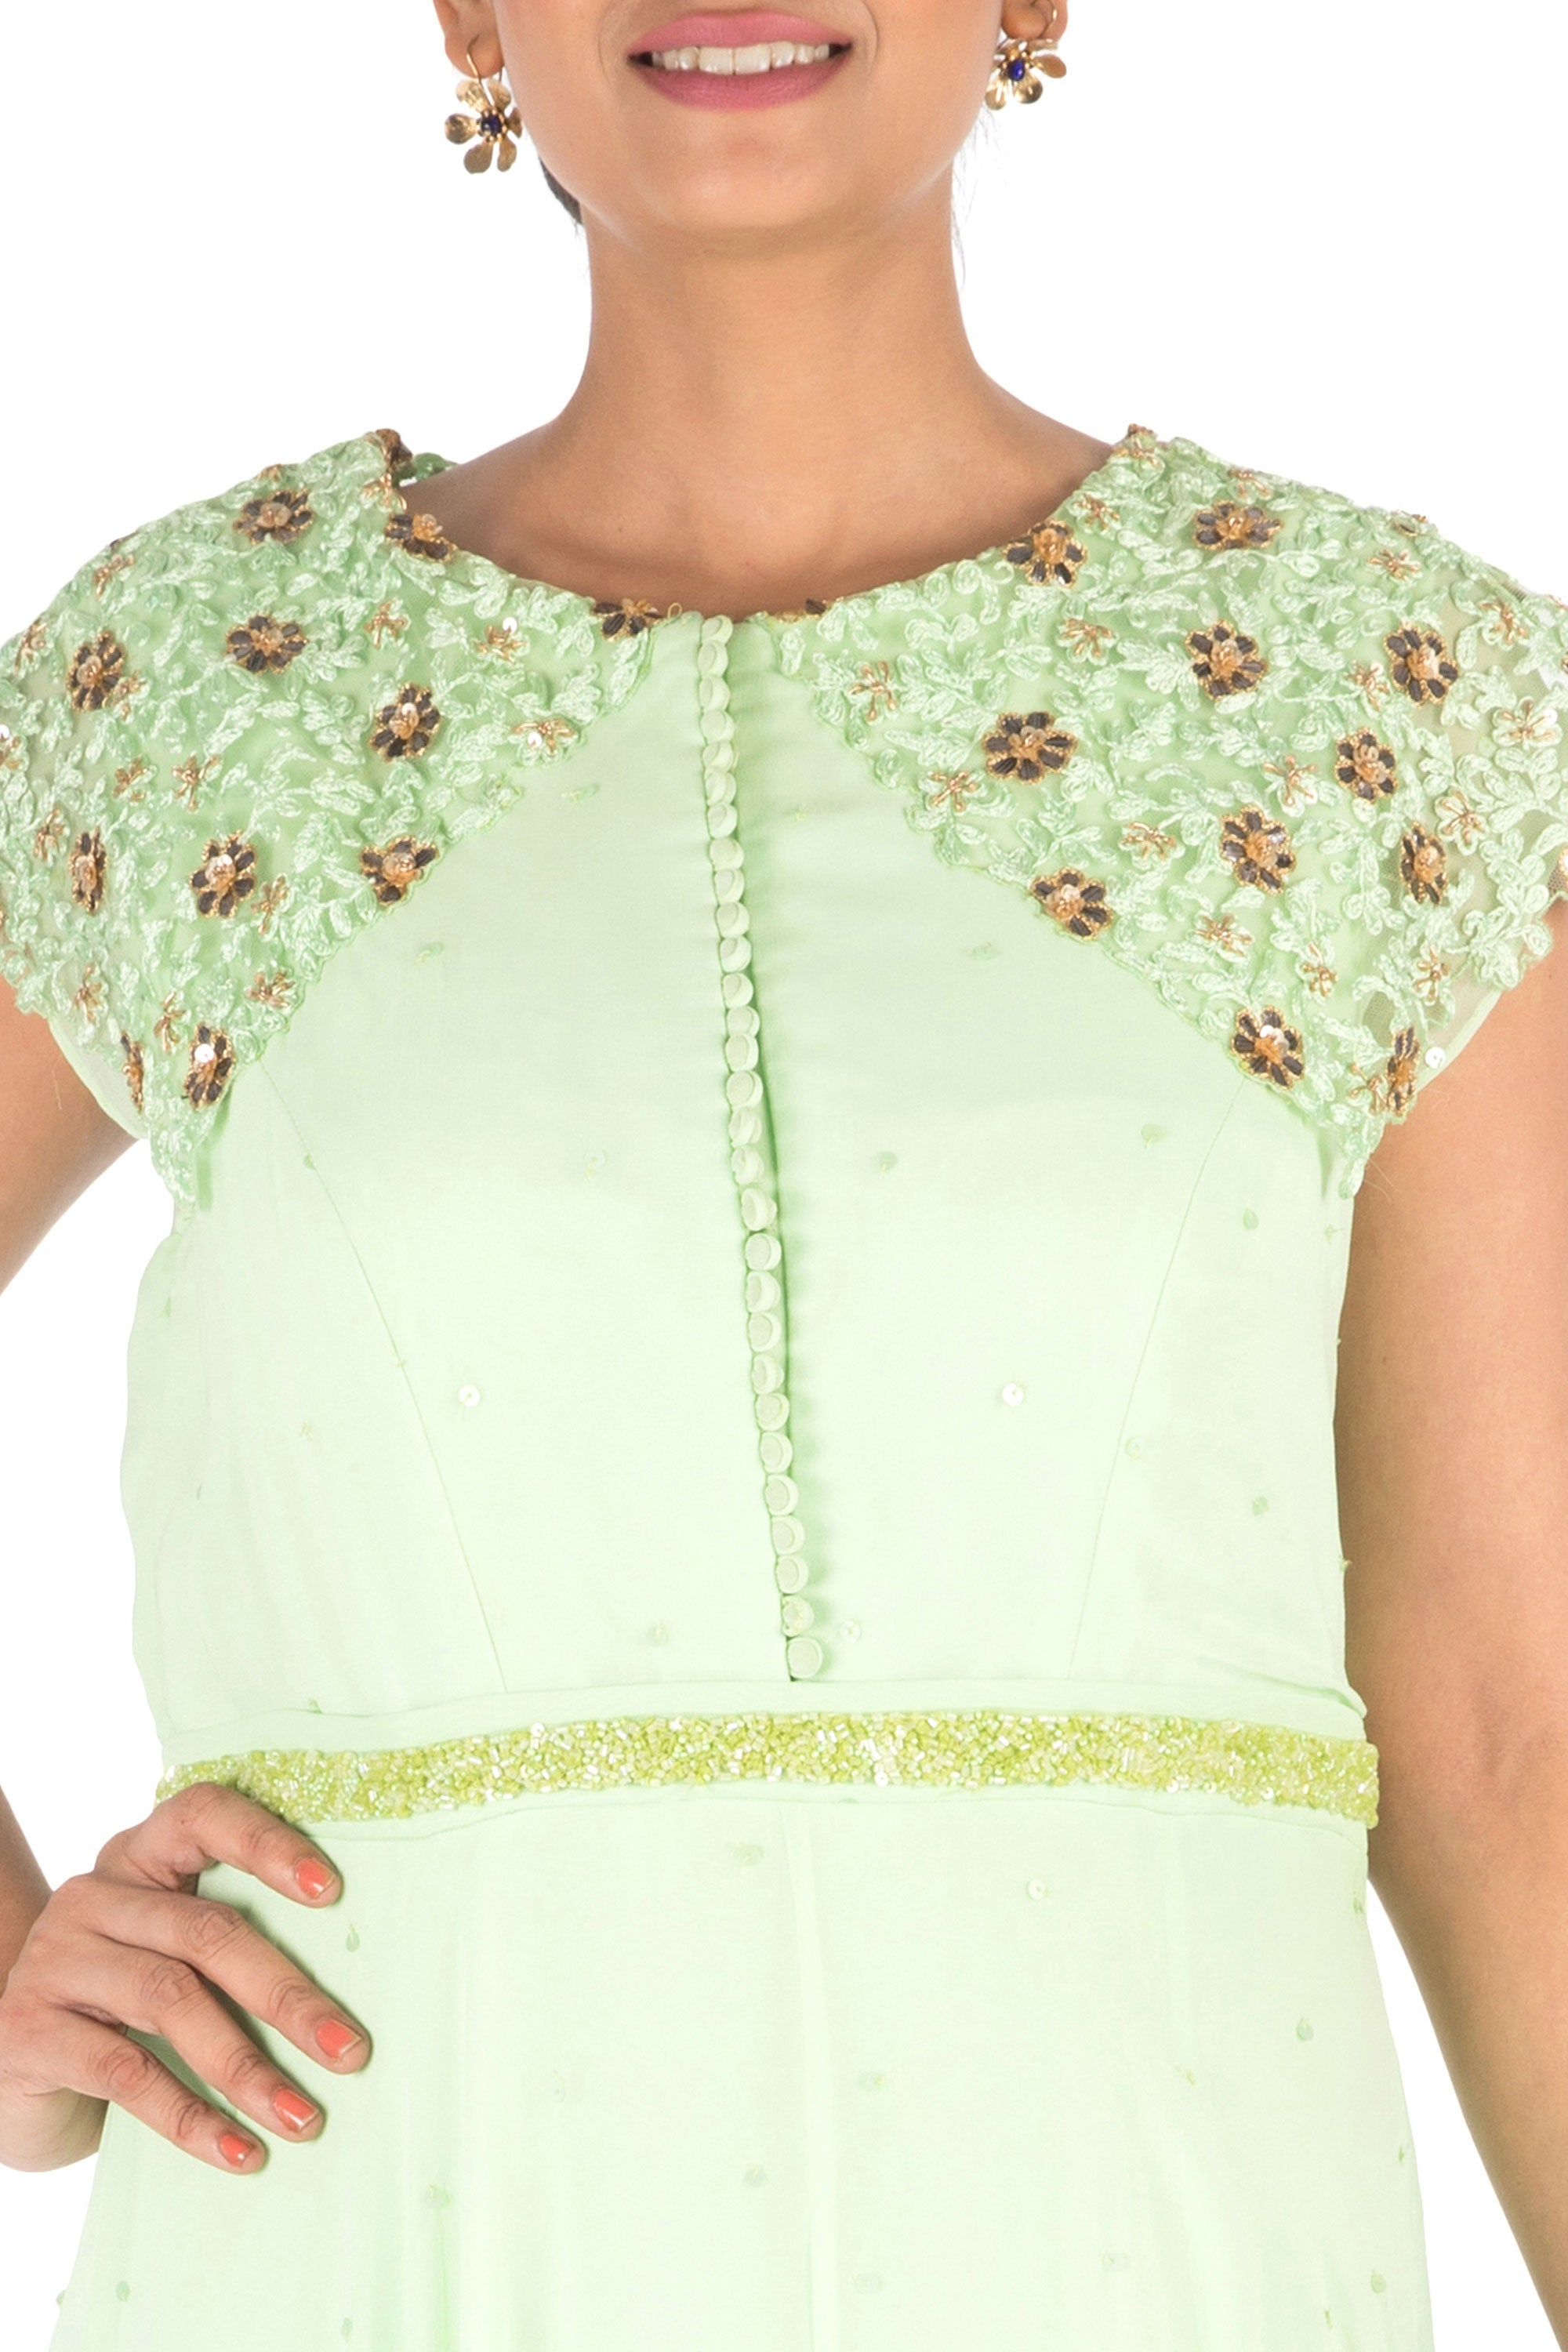 Hand Embroidered Mint Green Gown Closeup